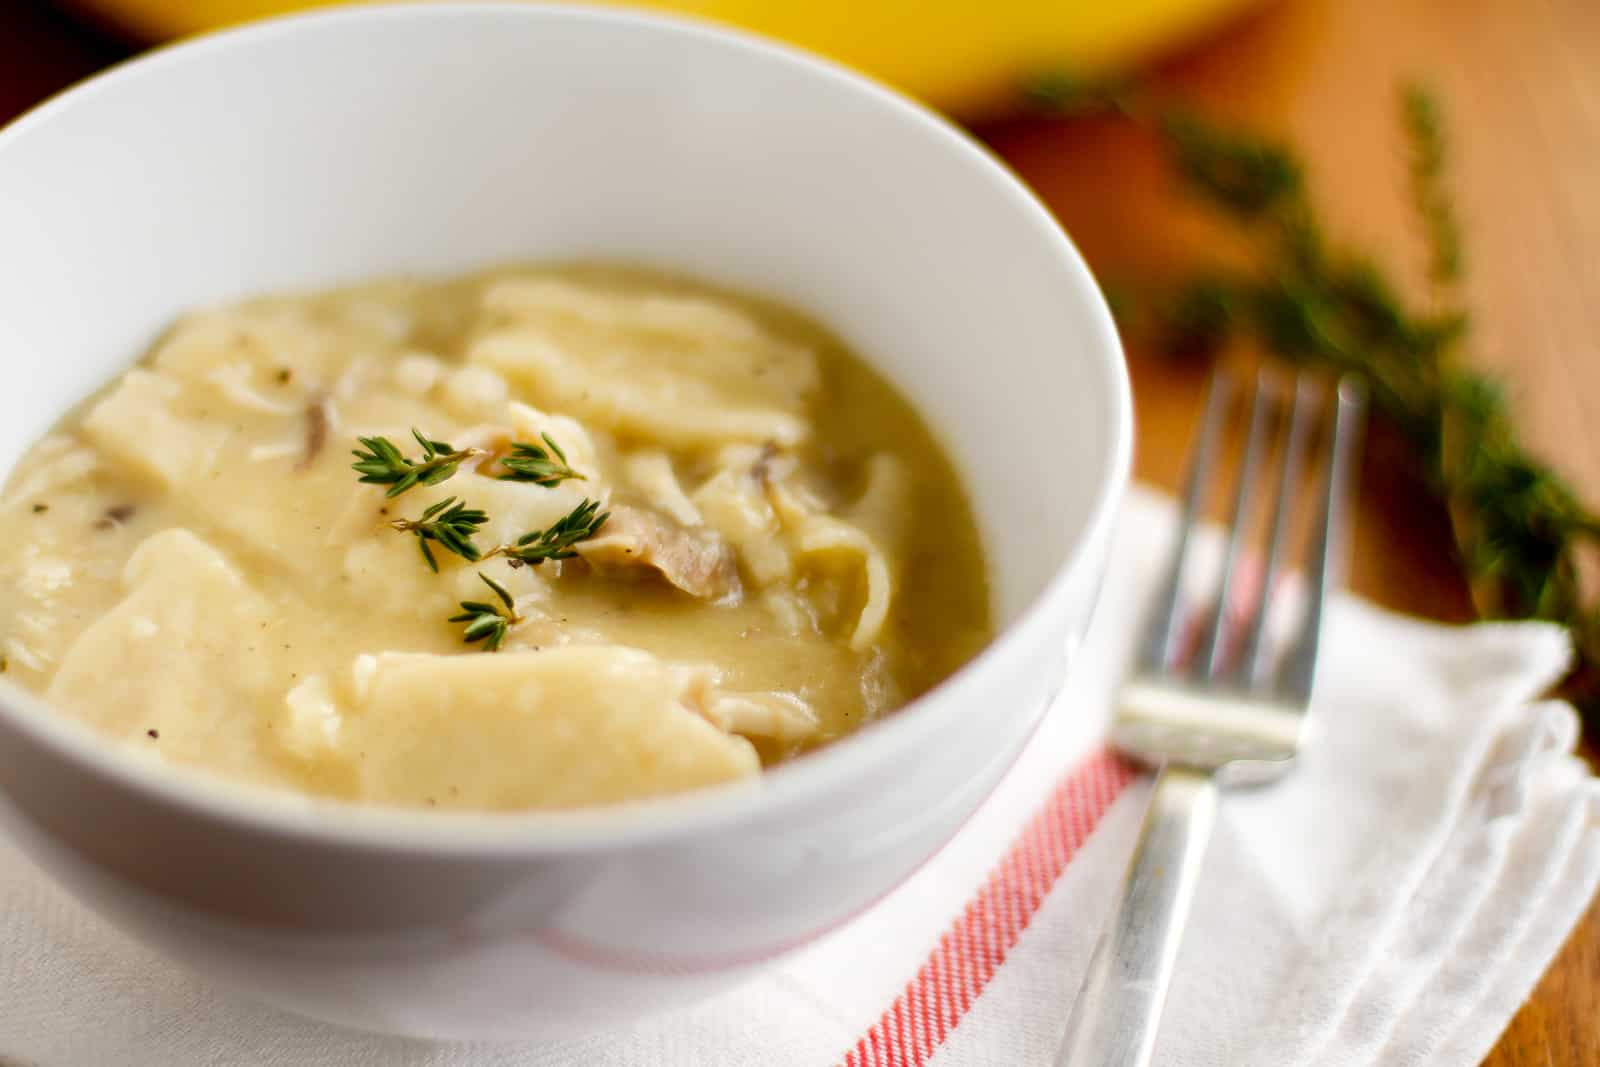 How To Make Dumplings For Chicken And Dumplings  Homemade Chicken and Dumplings Recipe